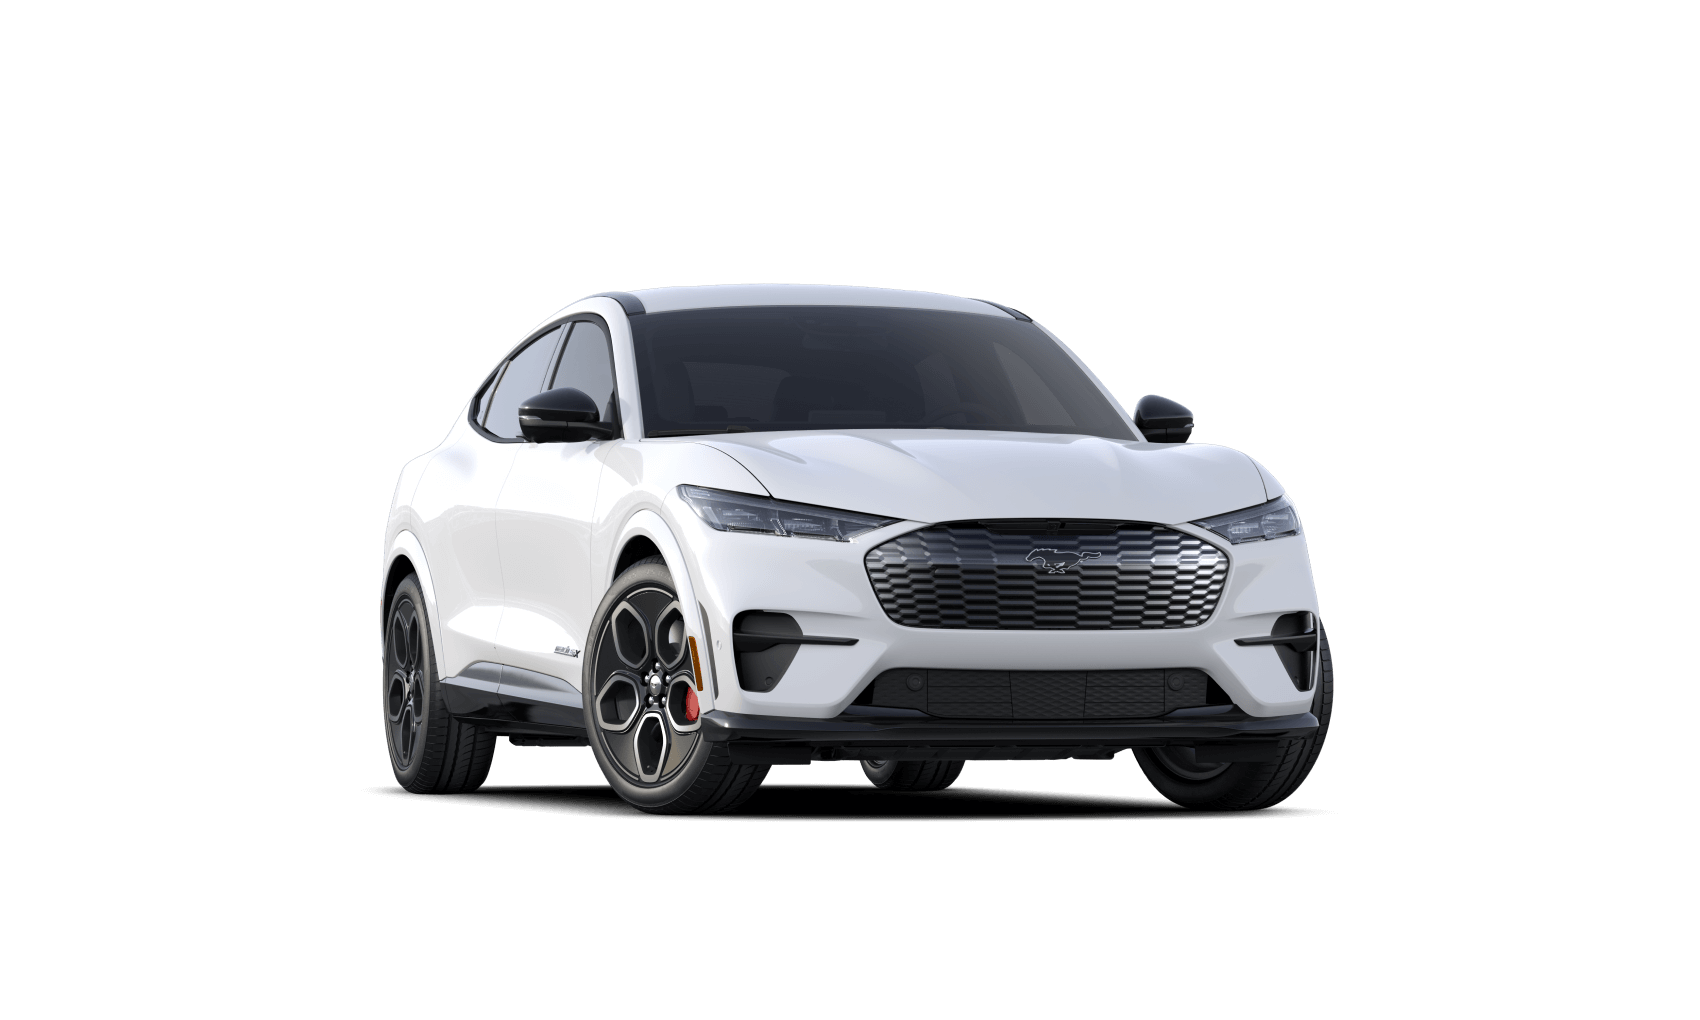 2021 Ford Mustang MACH-E Star White Norm Reeves Superstore